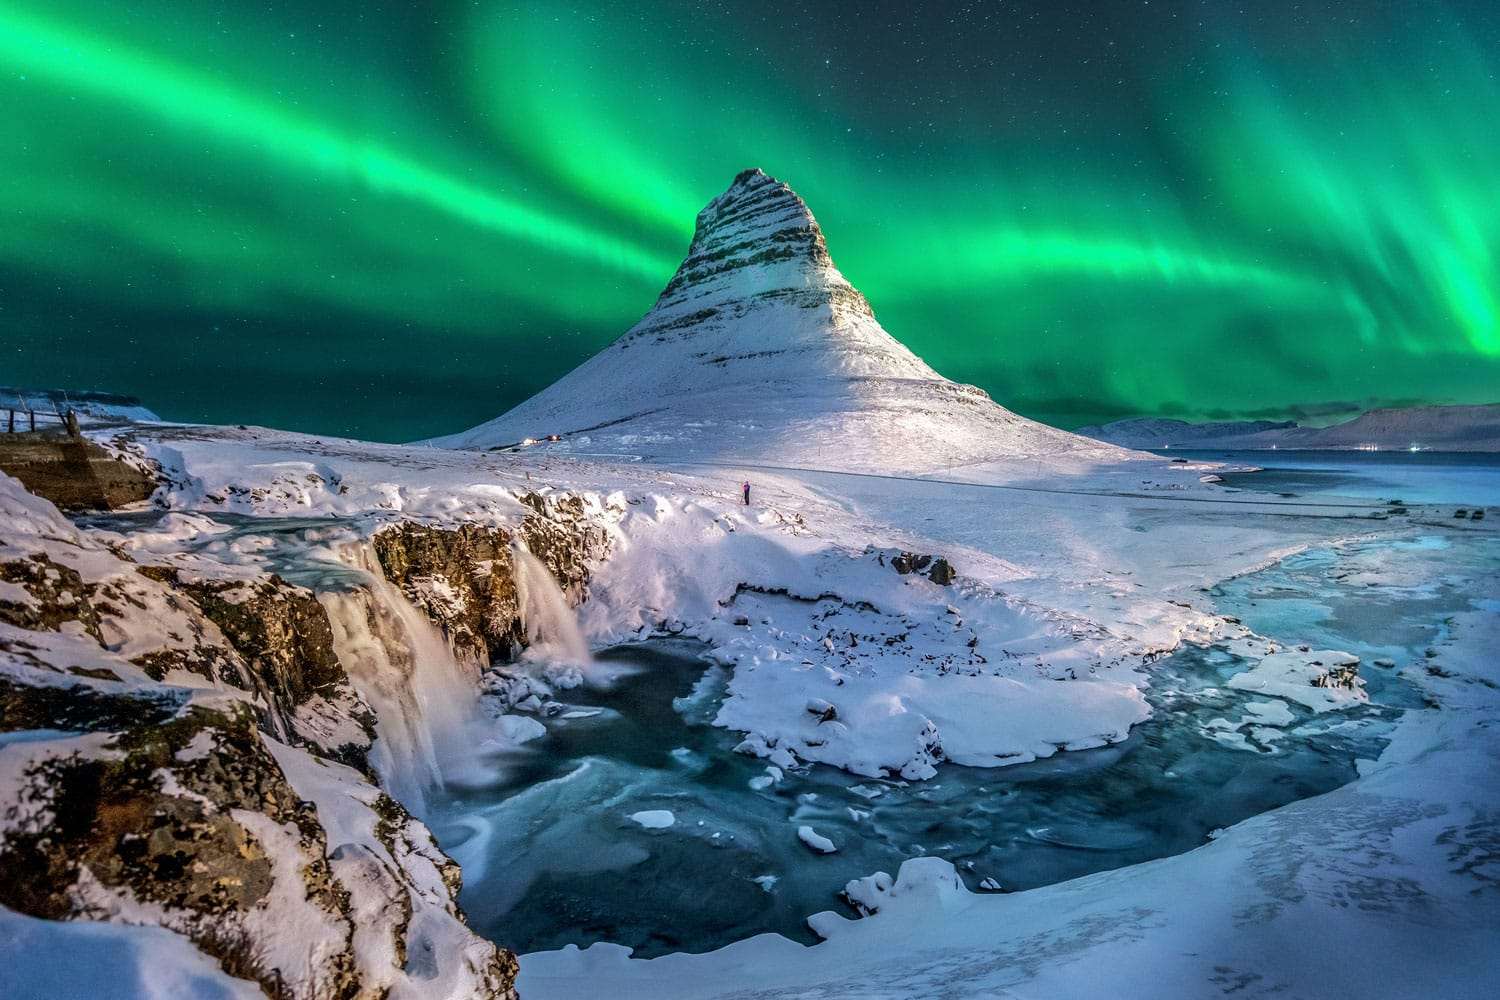 Northern lights appear over Mount Kirkjufell in Iceland.